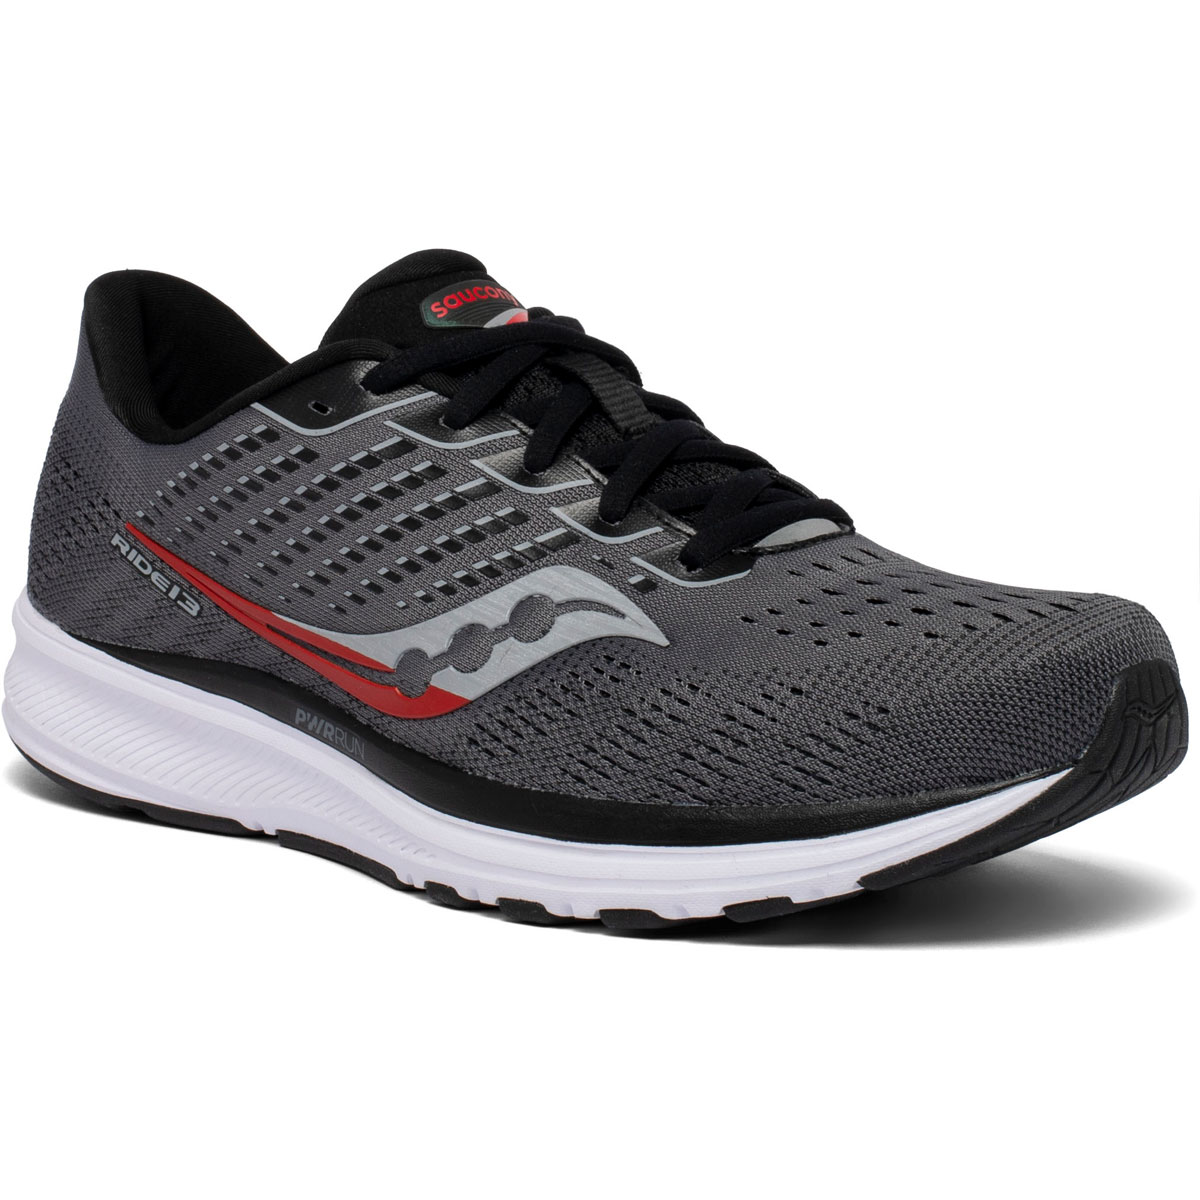 Men's Saucony Ride 13 Running Shoe - Color: Charcoal/Red - Size: 7 - Width: Regular, Charcoal/Red, large, image 5